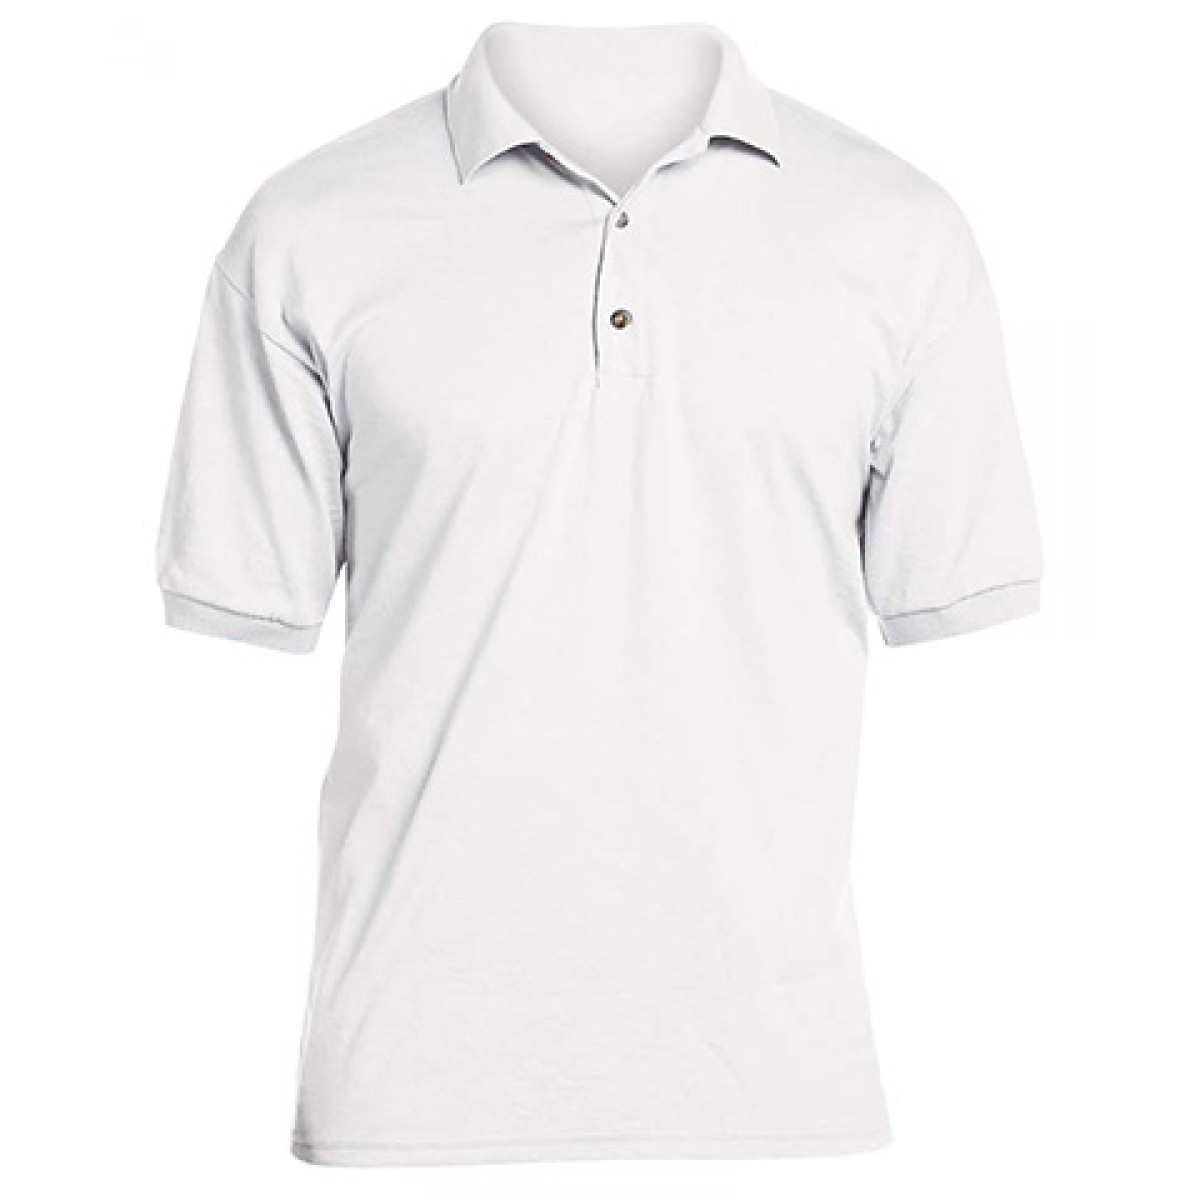 Jersey Polo 50/50 -White-3XL